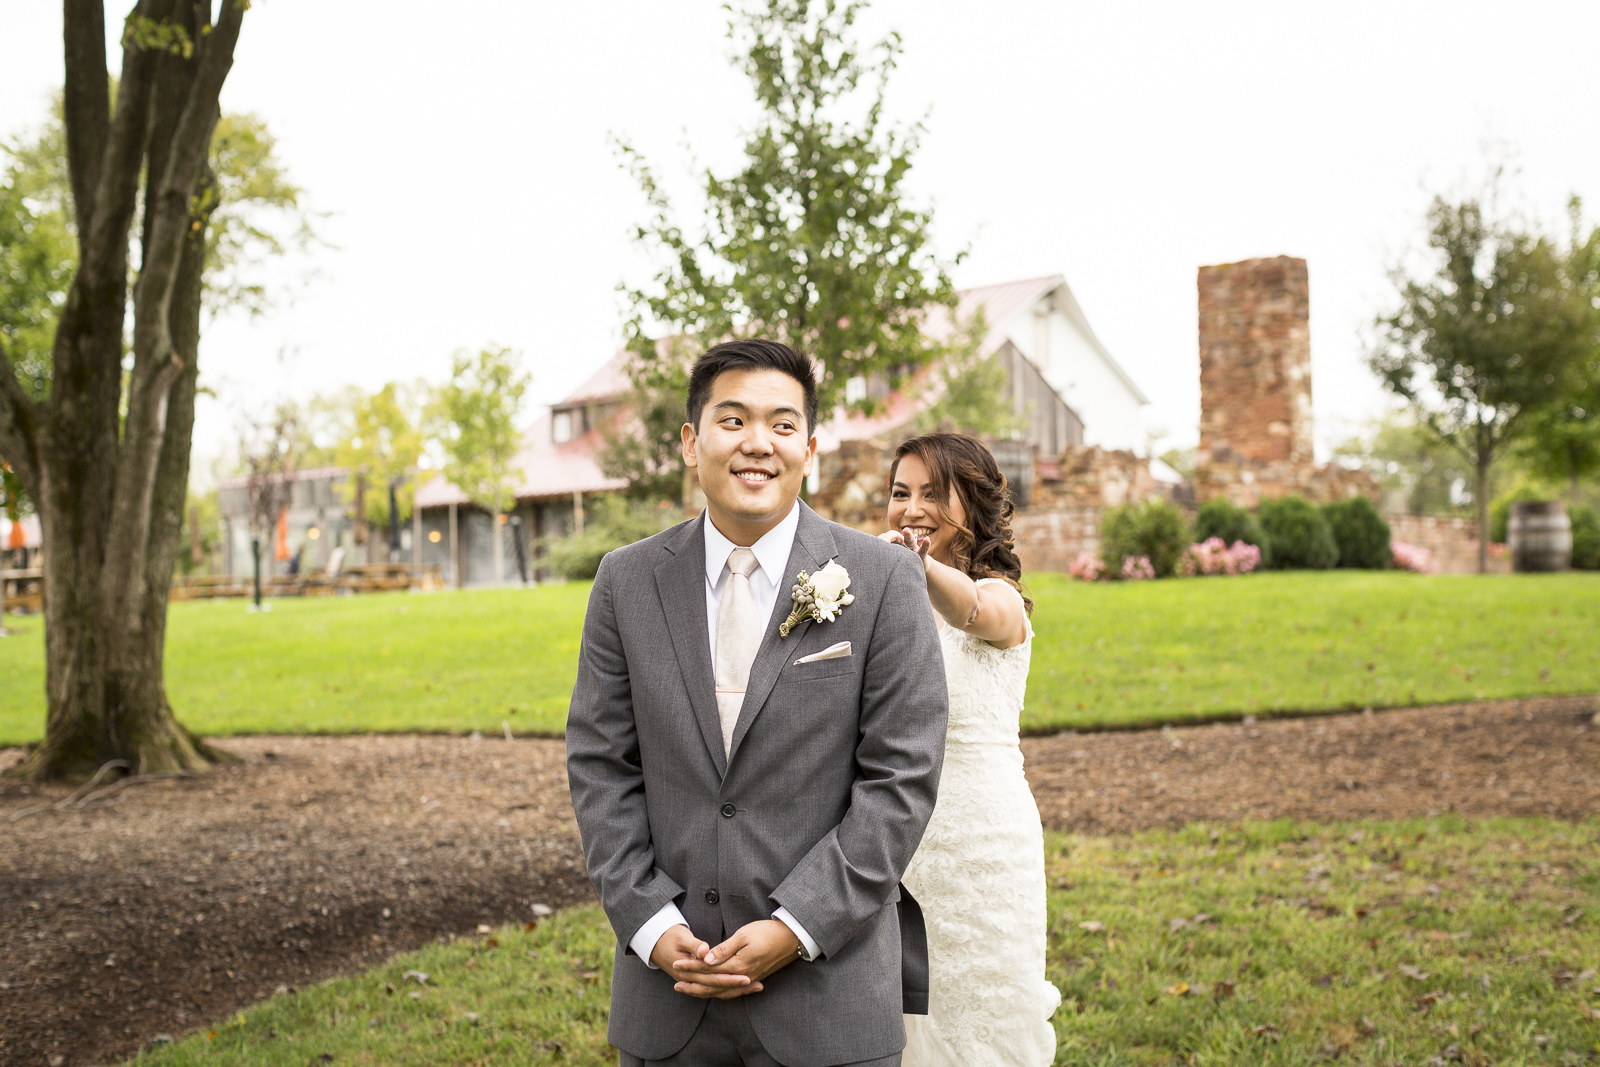 The wedding of Contessa Crisostomo and Will Jin at the Winery at Bull Run in Centreville, Virginia. October 4, 2015.